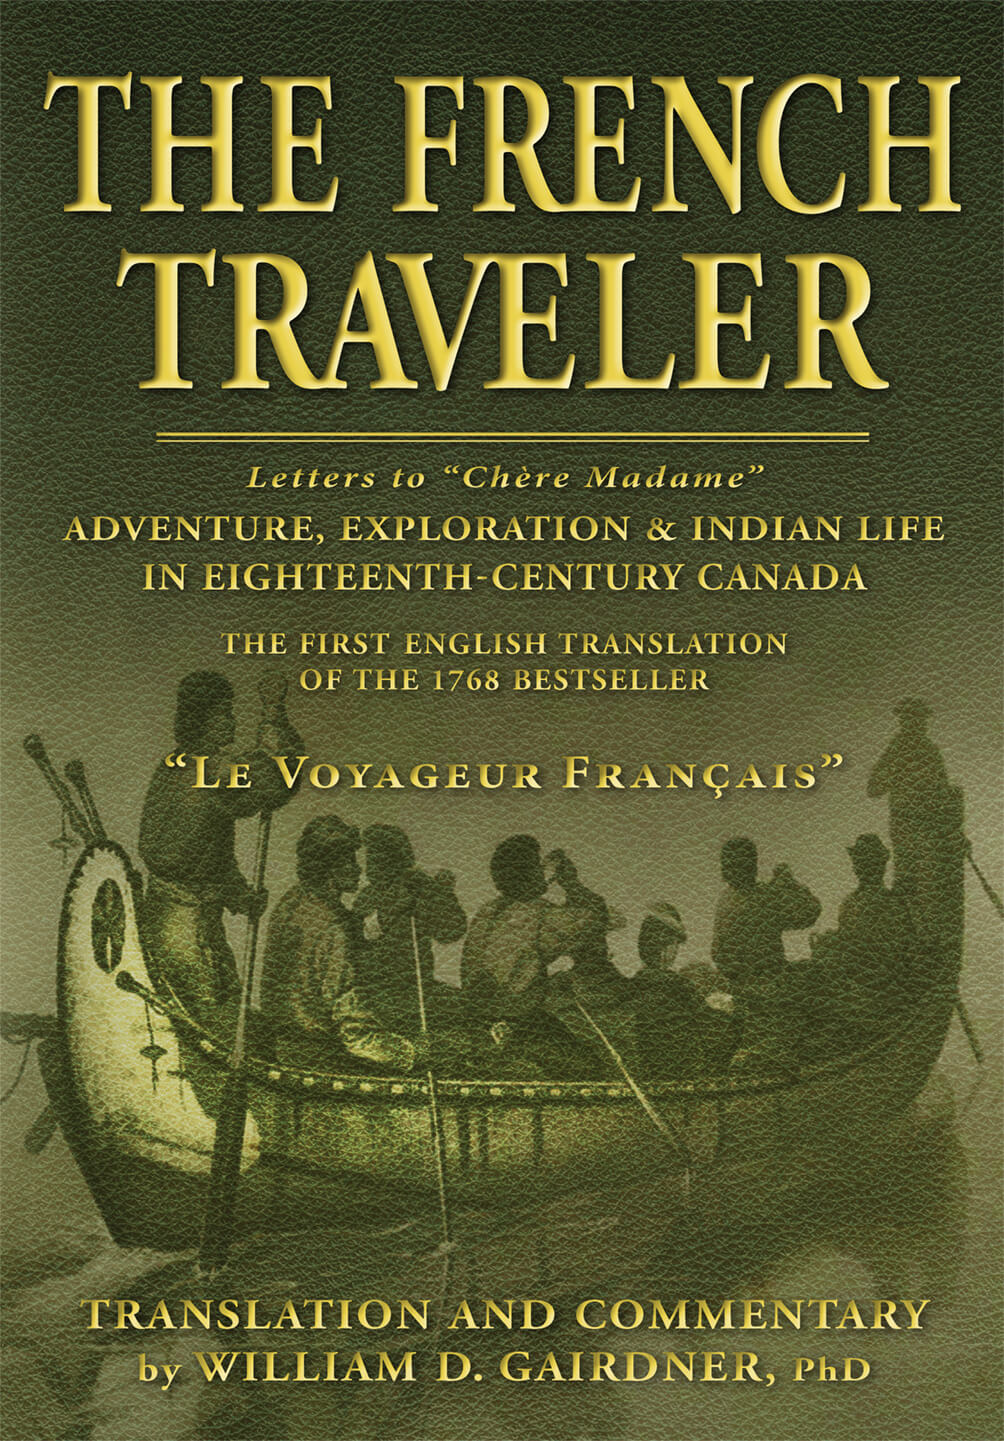 The French Traveler book cover